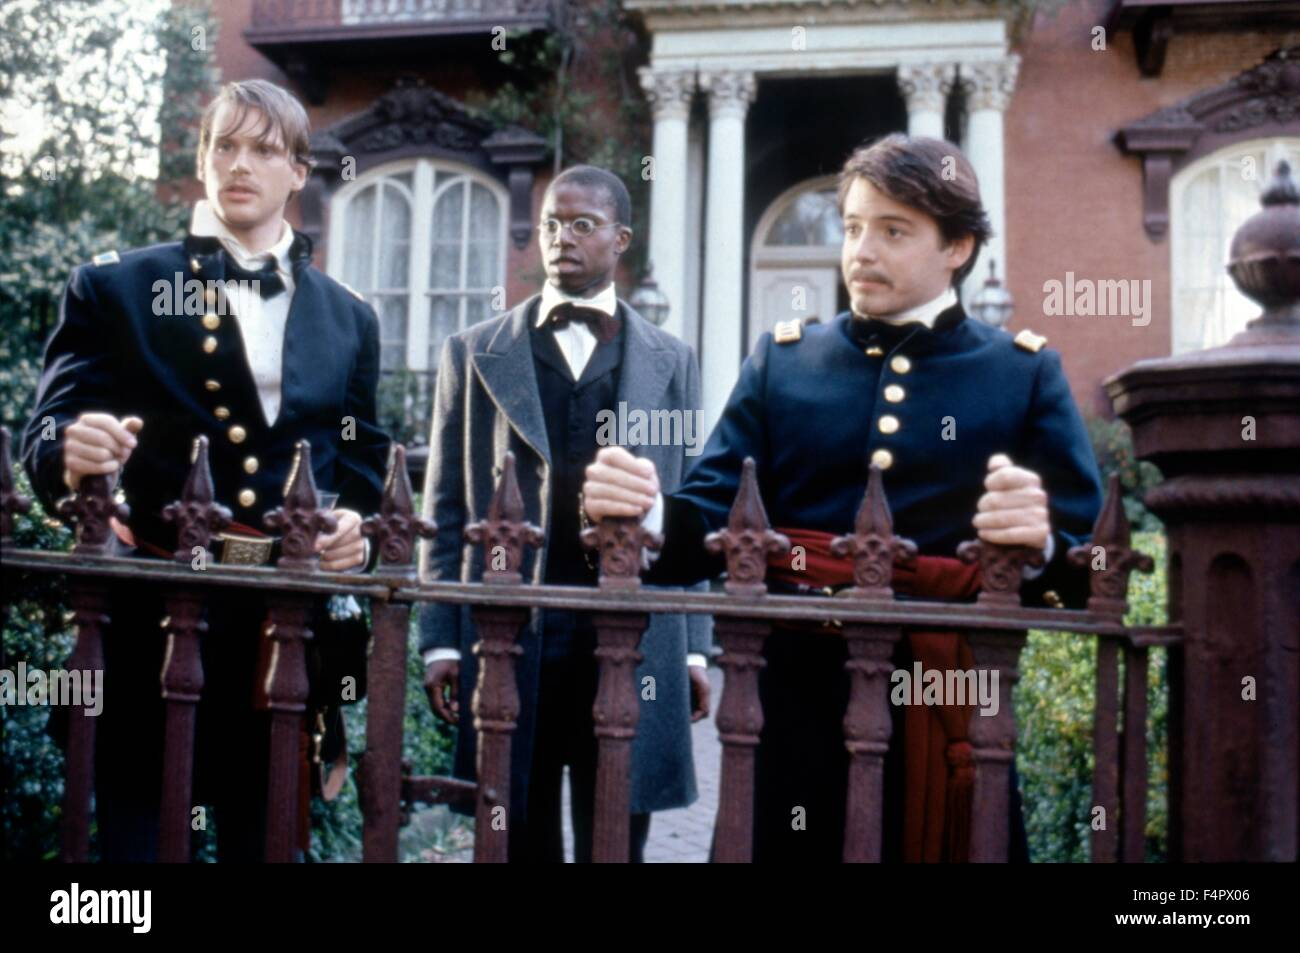 the 1989 film glory directed by edward Glory (1989) directed by edward zwick synopsis edit robert gould shaw leads the us civil war's first all-black volunteer company, fighting prejudices from both his.